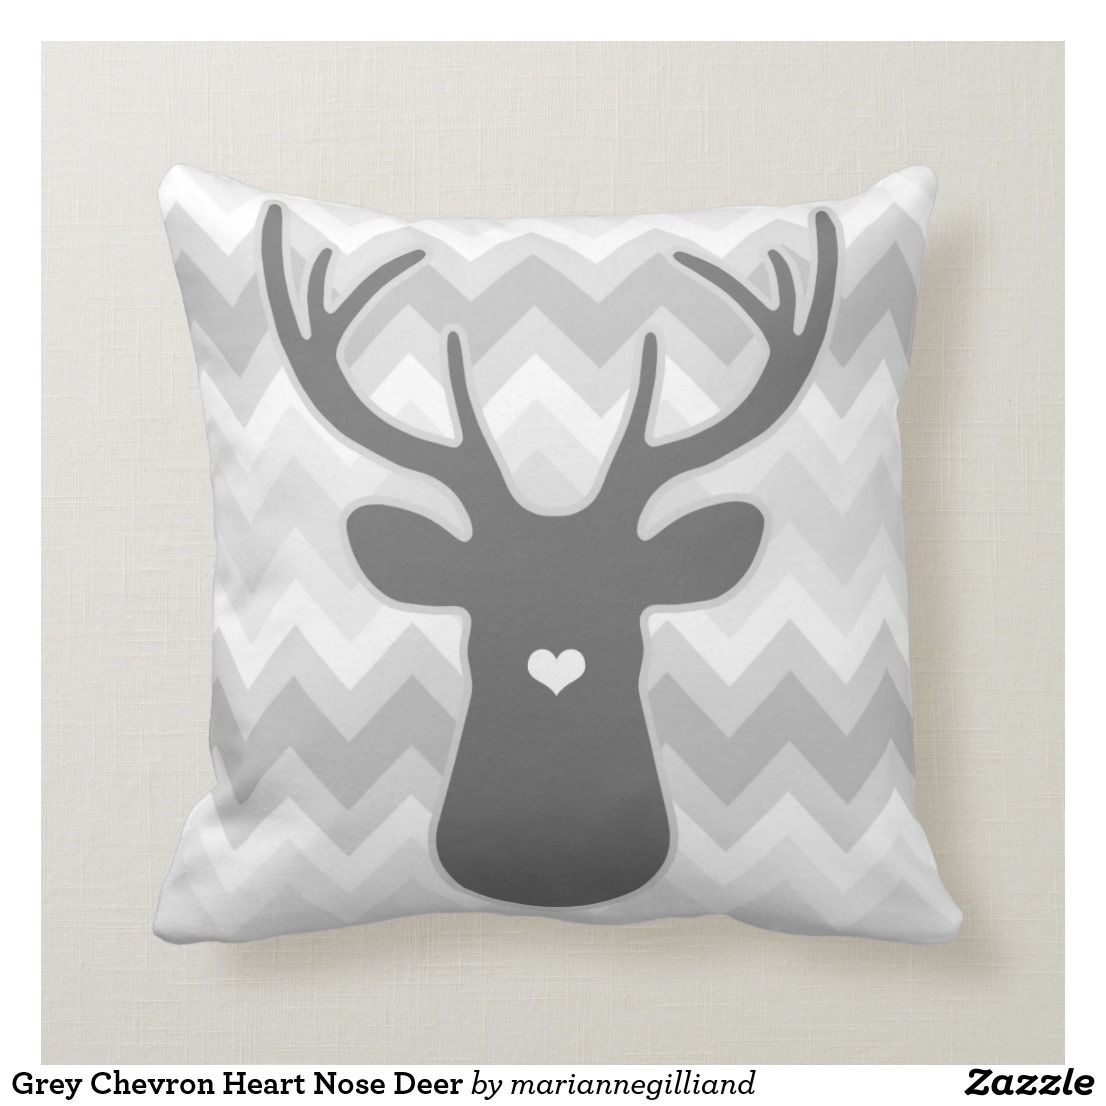 Awesome Grey Chevron Heart Nose Deer Throw Pillow Zazzle Com Inzonedesignstudio Interior Chair Design Inzonedesignstudiocom